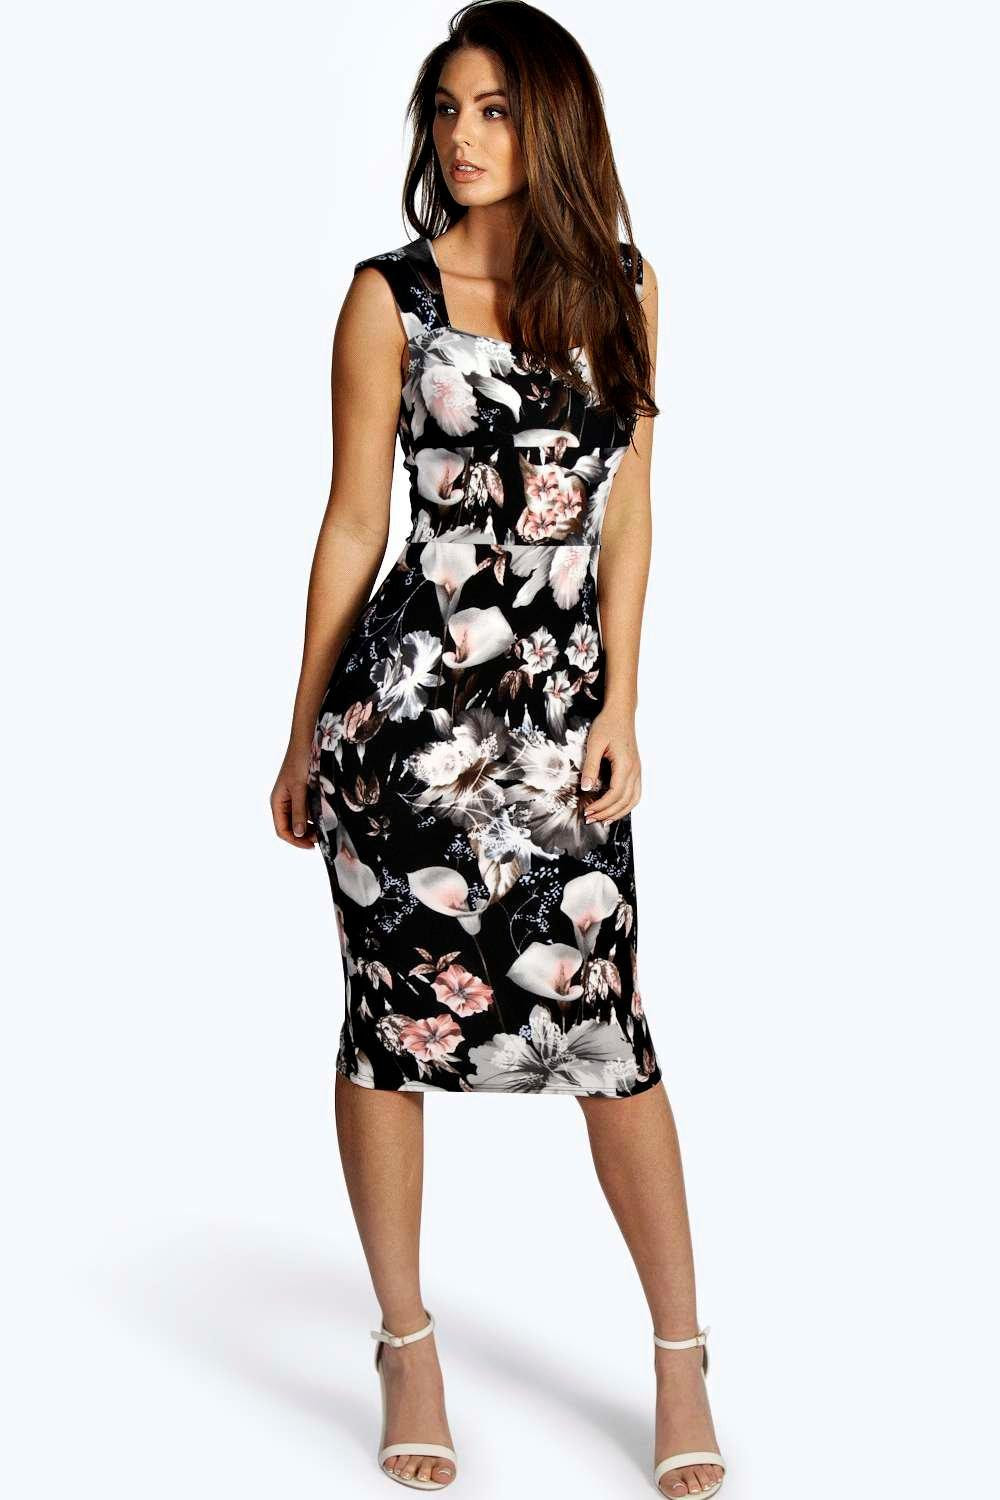 Outlets online zara floral bodycon dress